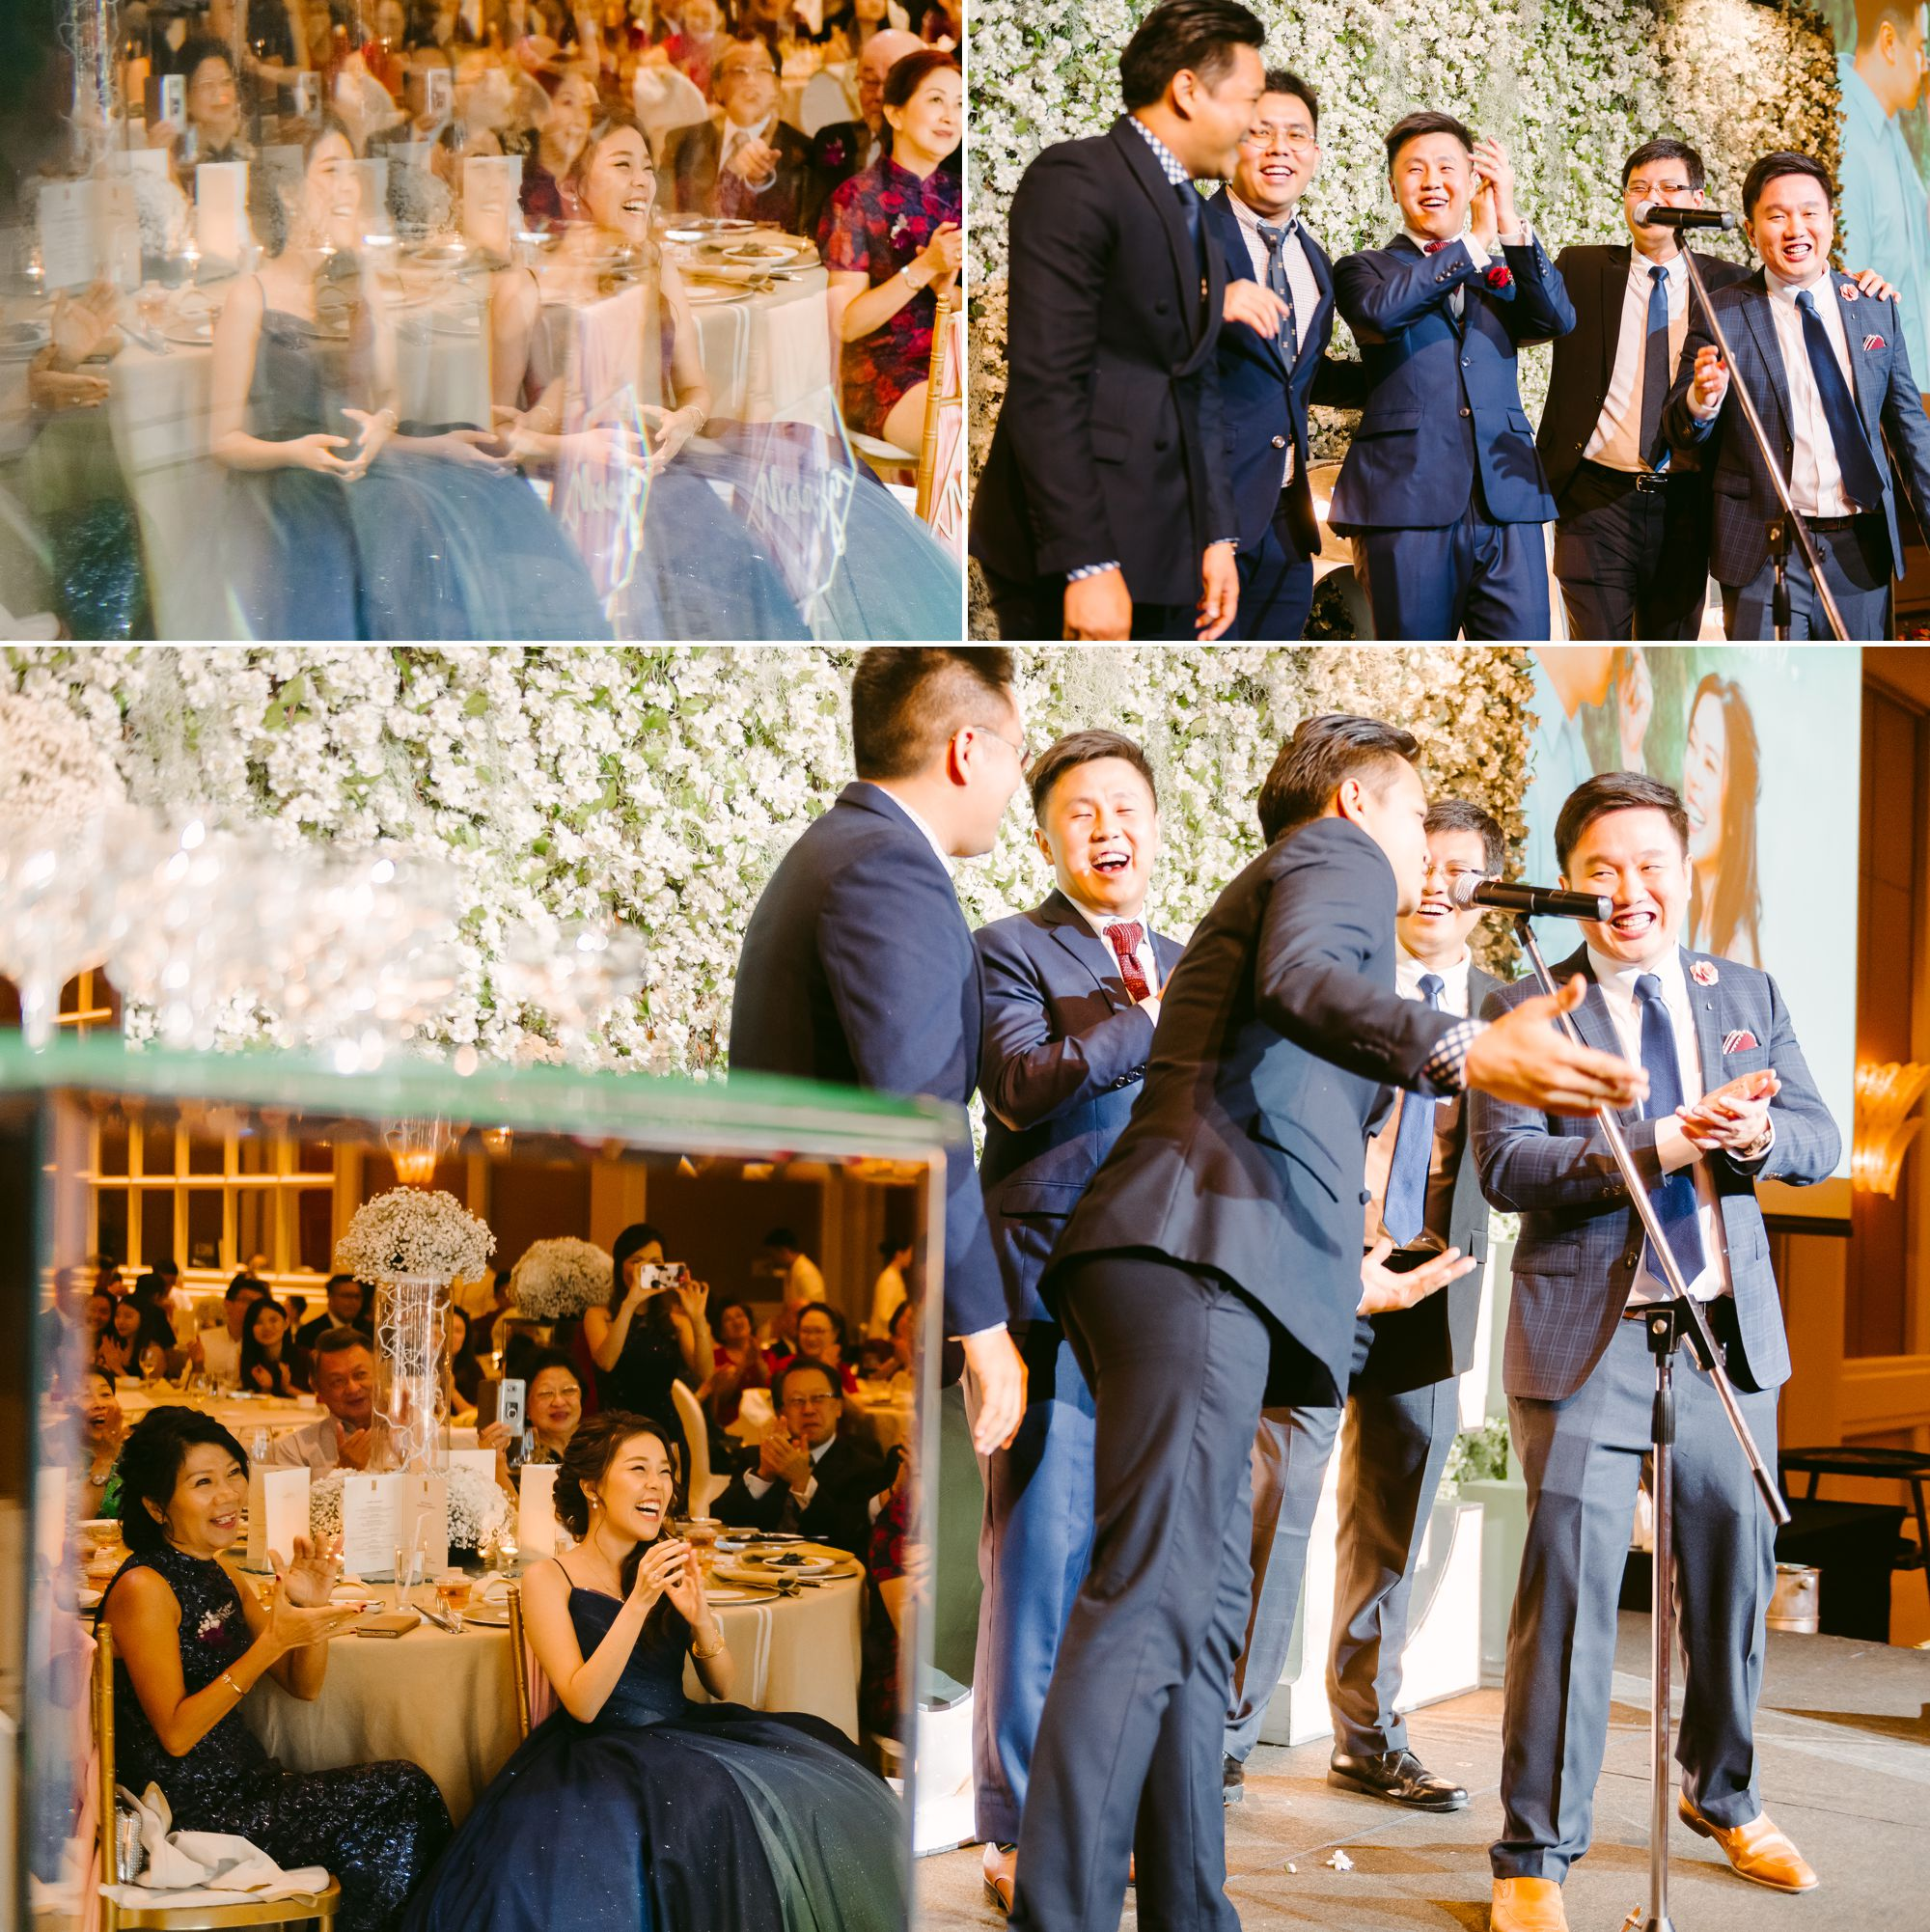 conrad_wedding_Singapore_ 40.jpg